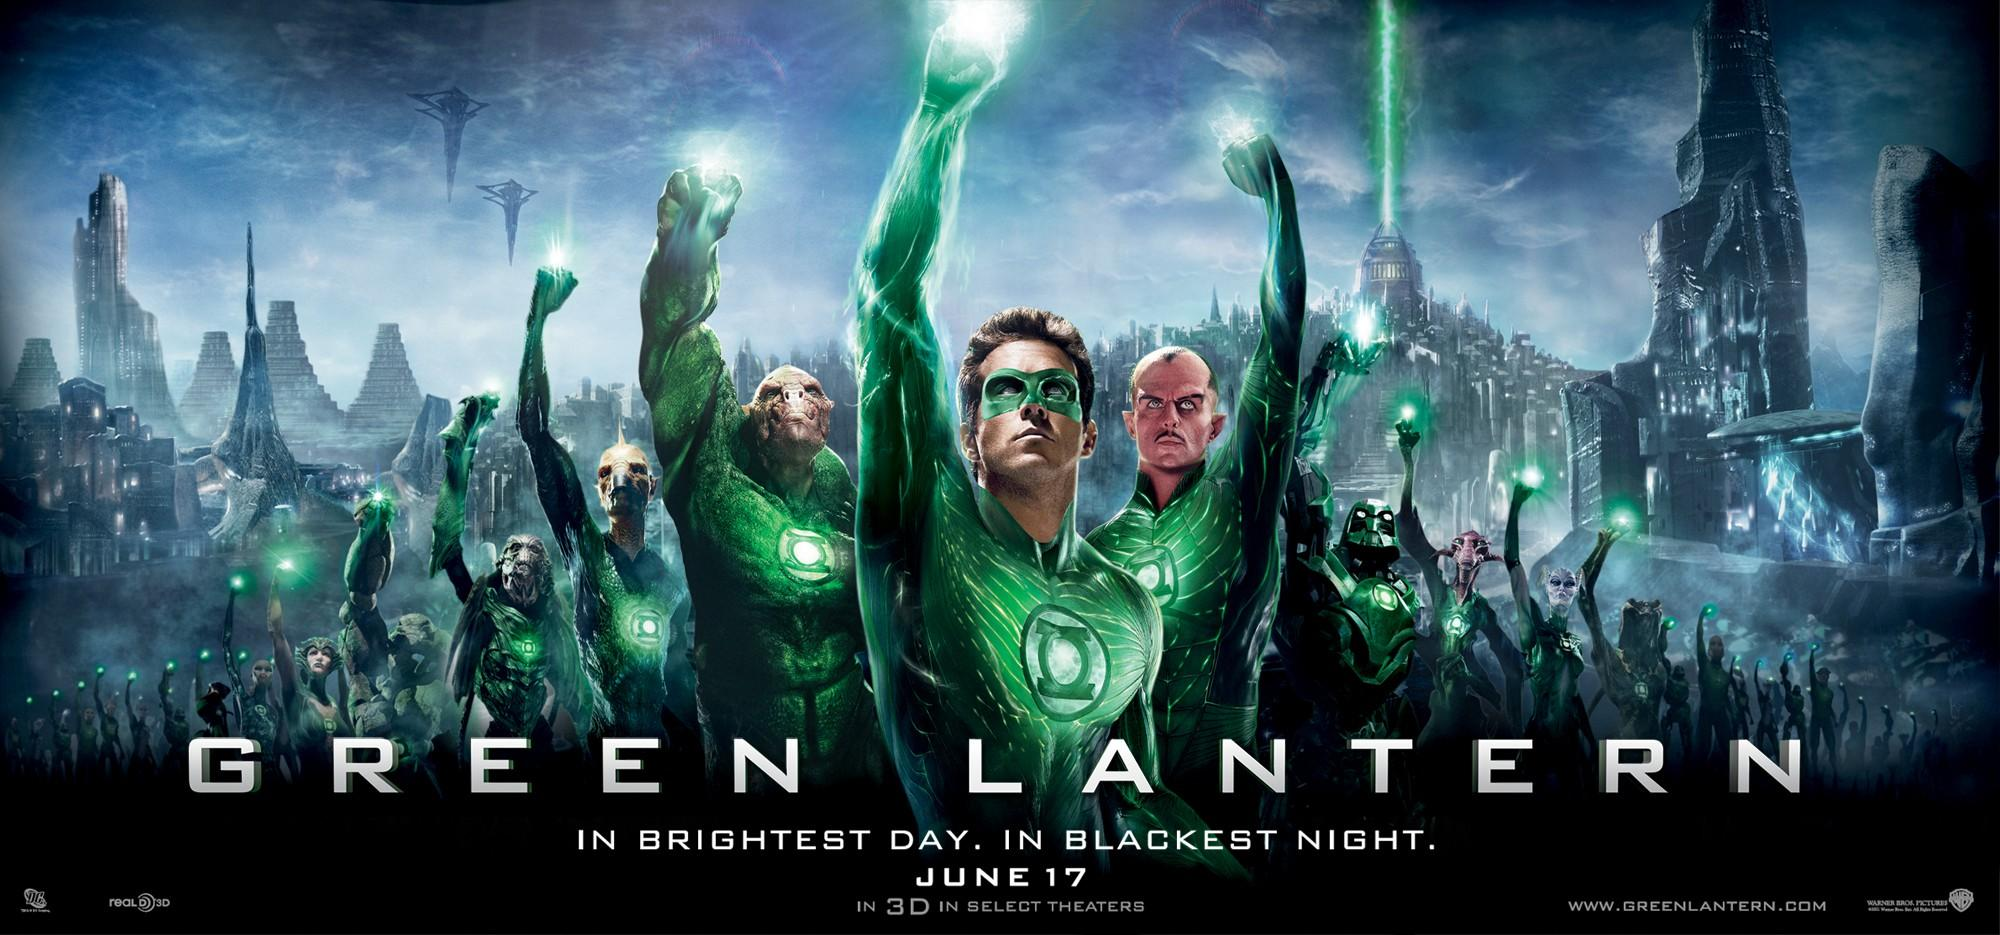 Green Lantern: Mega image au format Movie Poster - Internet Movie Poster Gallery Prix